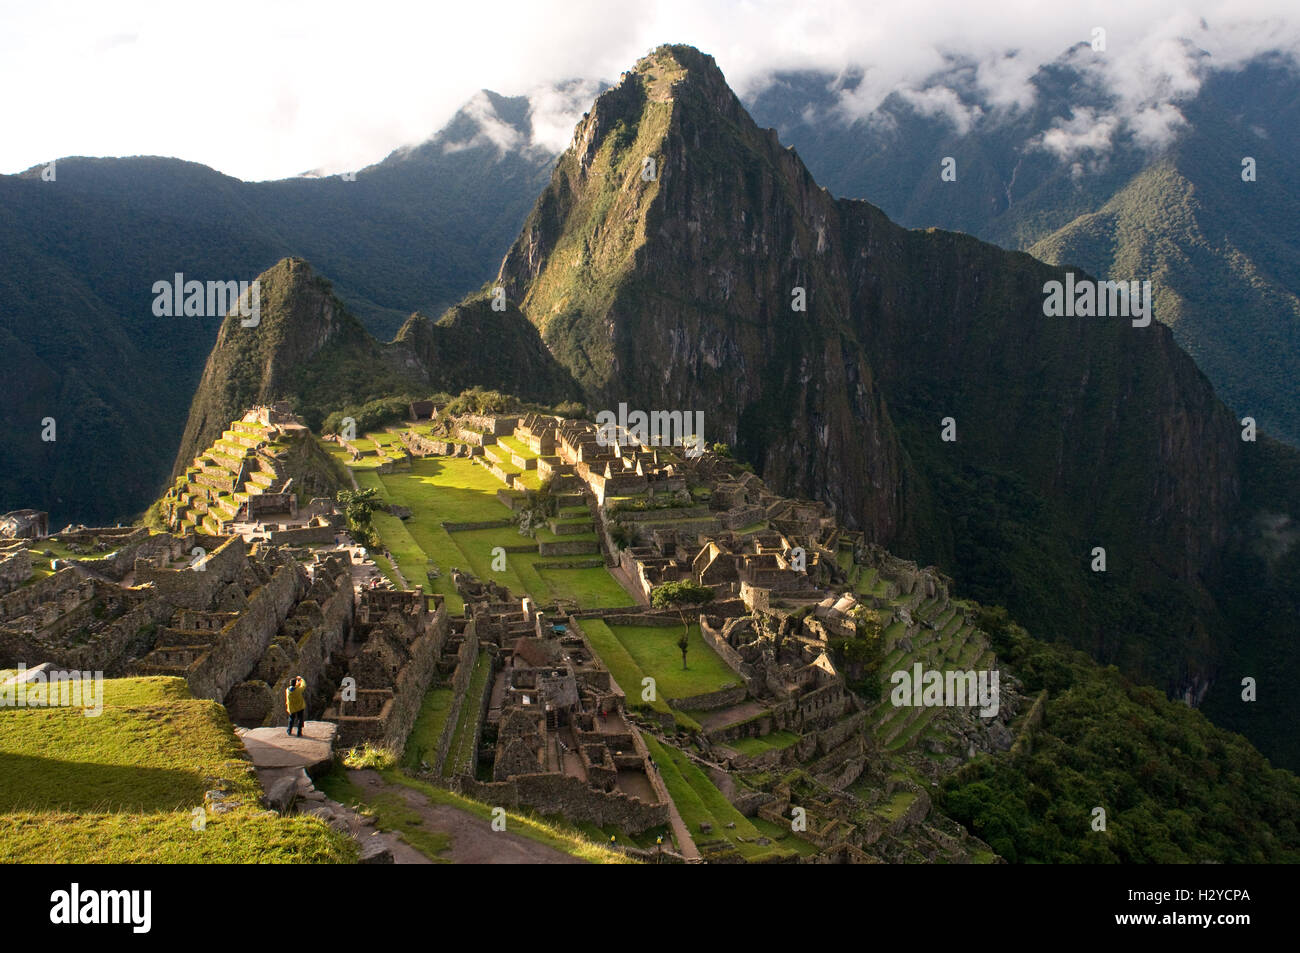 View of the Machu Picchu landscape. Machu Picchu is a city located high in the Andes Mountains in modern Peru. It - Stock Image